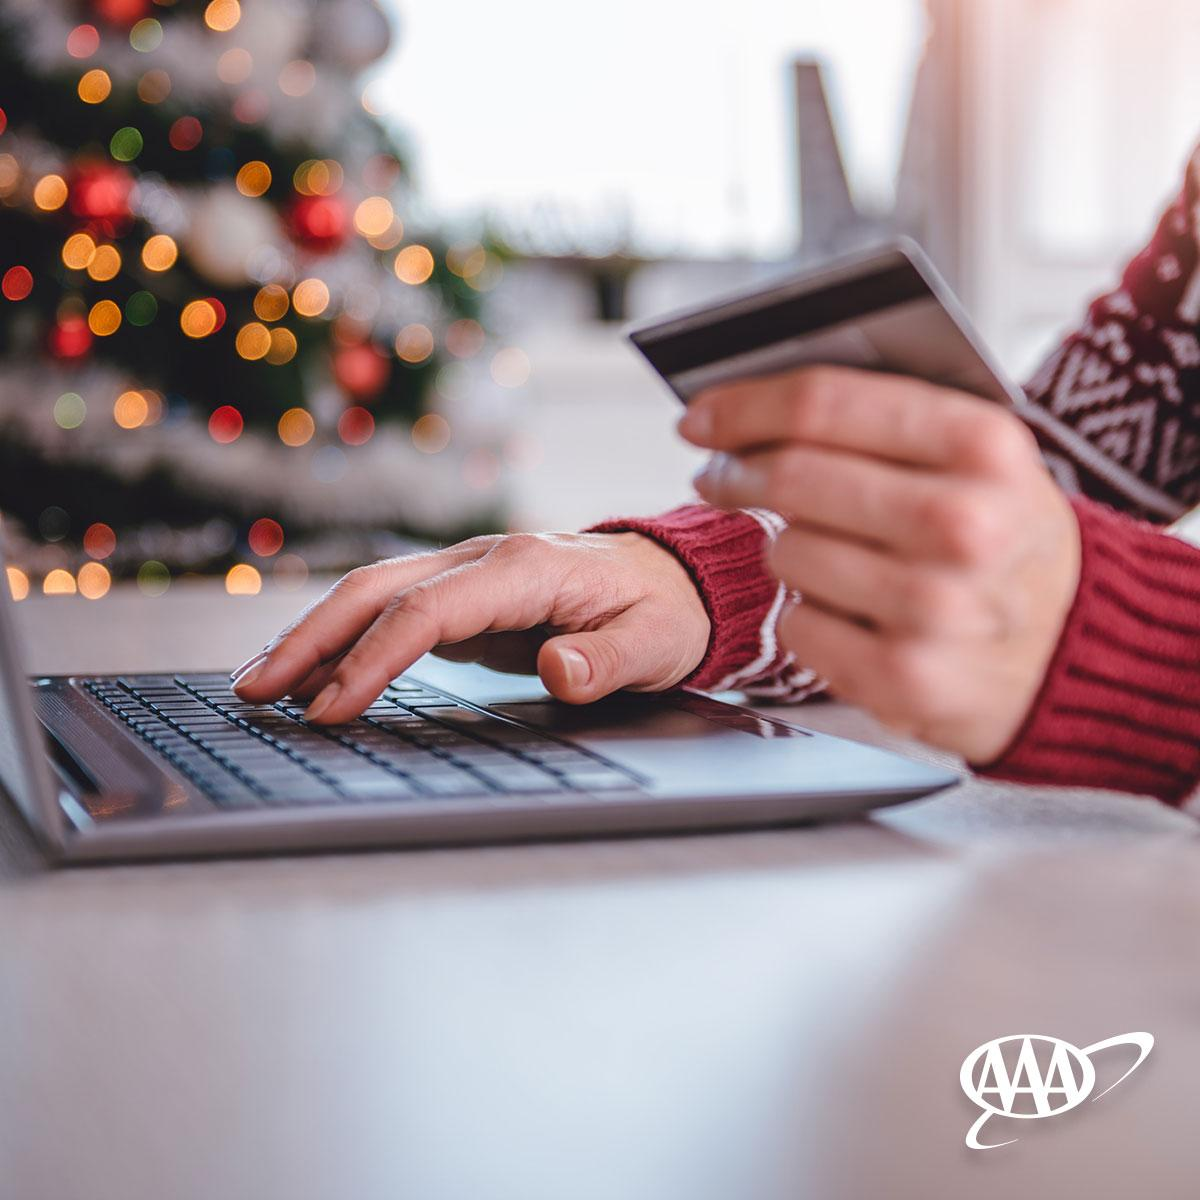 Tis' the season...to make sure you're protected! We know you might be doing a bit of holiday shopping in the next few weeks, did you know that AAA members get free identity theft protection?   Enroll in your free Essential Coverage here: